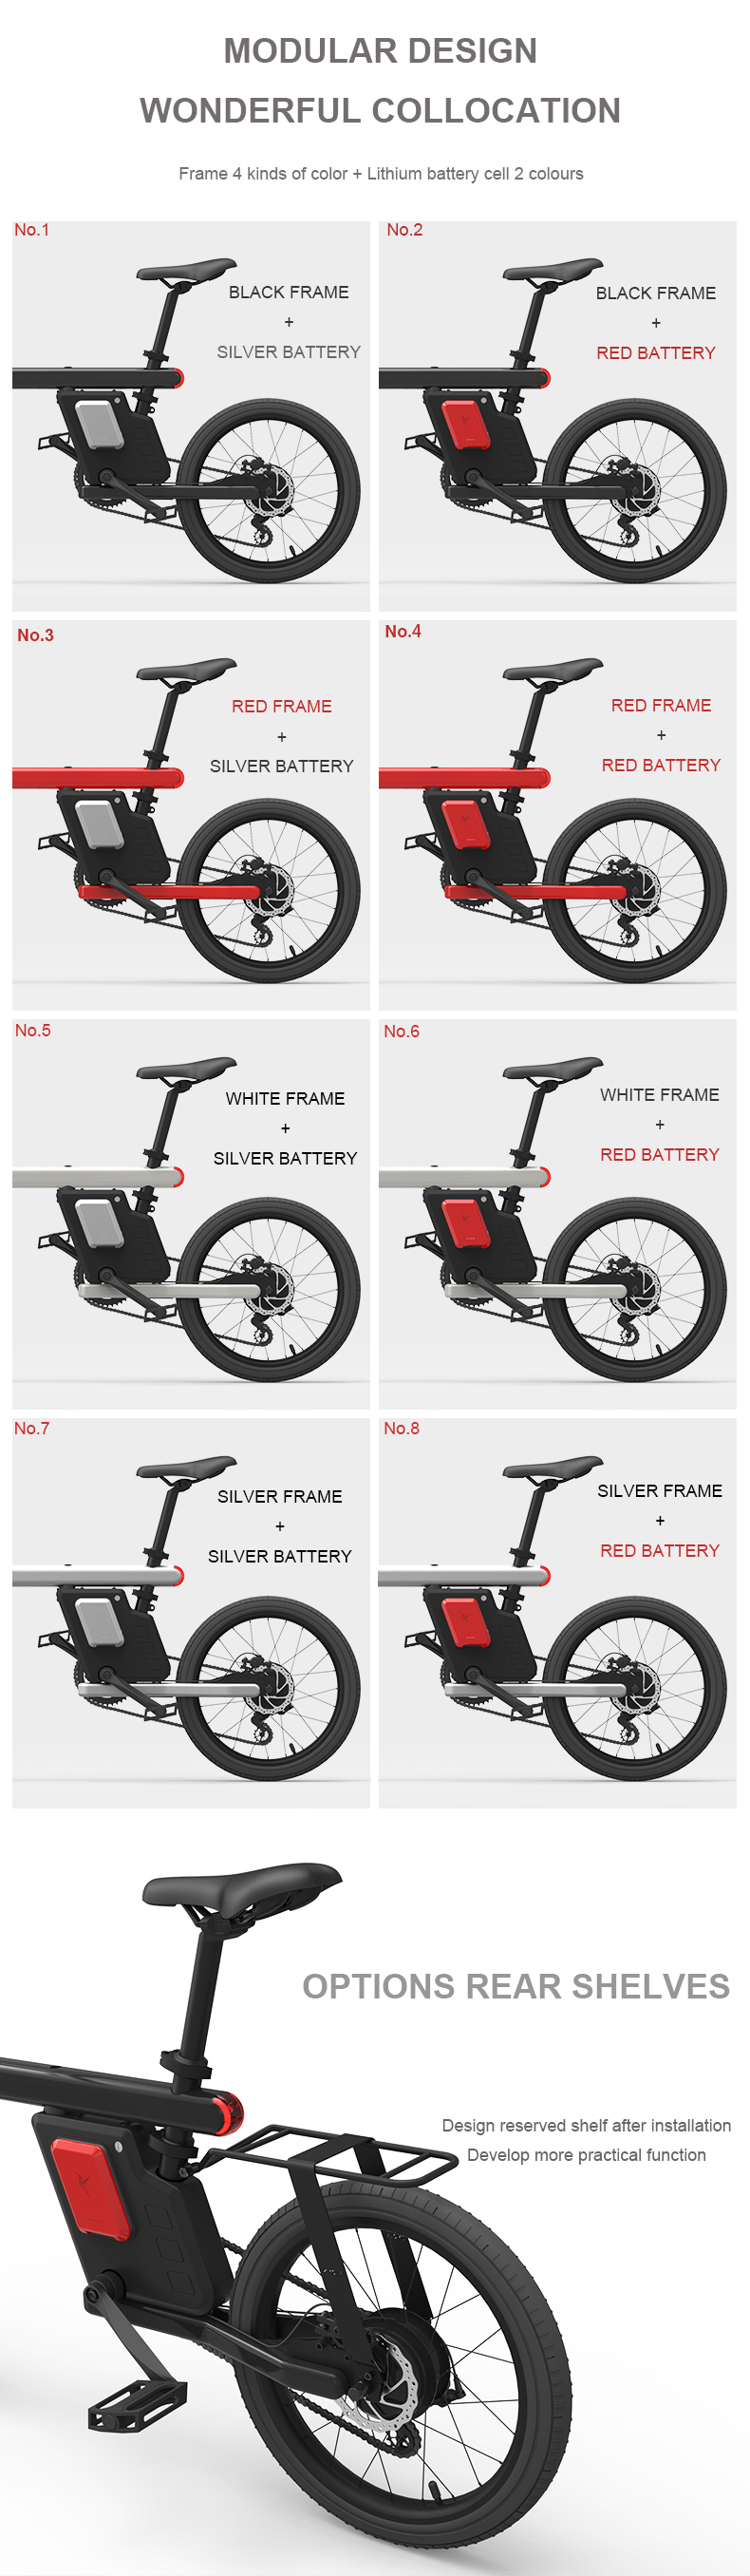 HTB1WK03XyDxK1RjSsphq6zHrpXaU - 20inch Electrical metropolis bike 36V lithium battery   fold electrical bicycle pace model 250w motor Pure electrical driving ebike